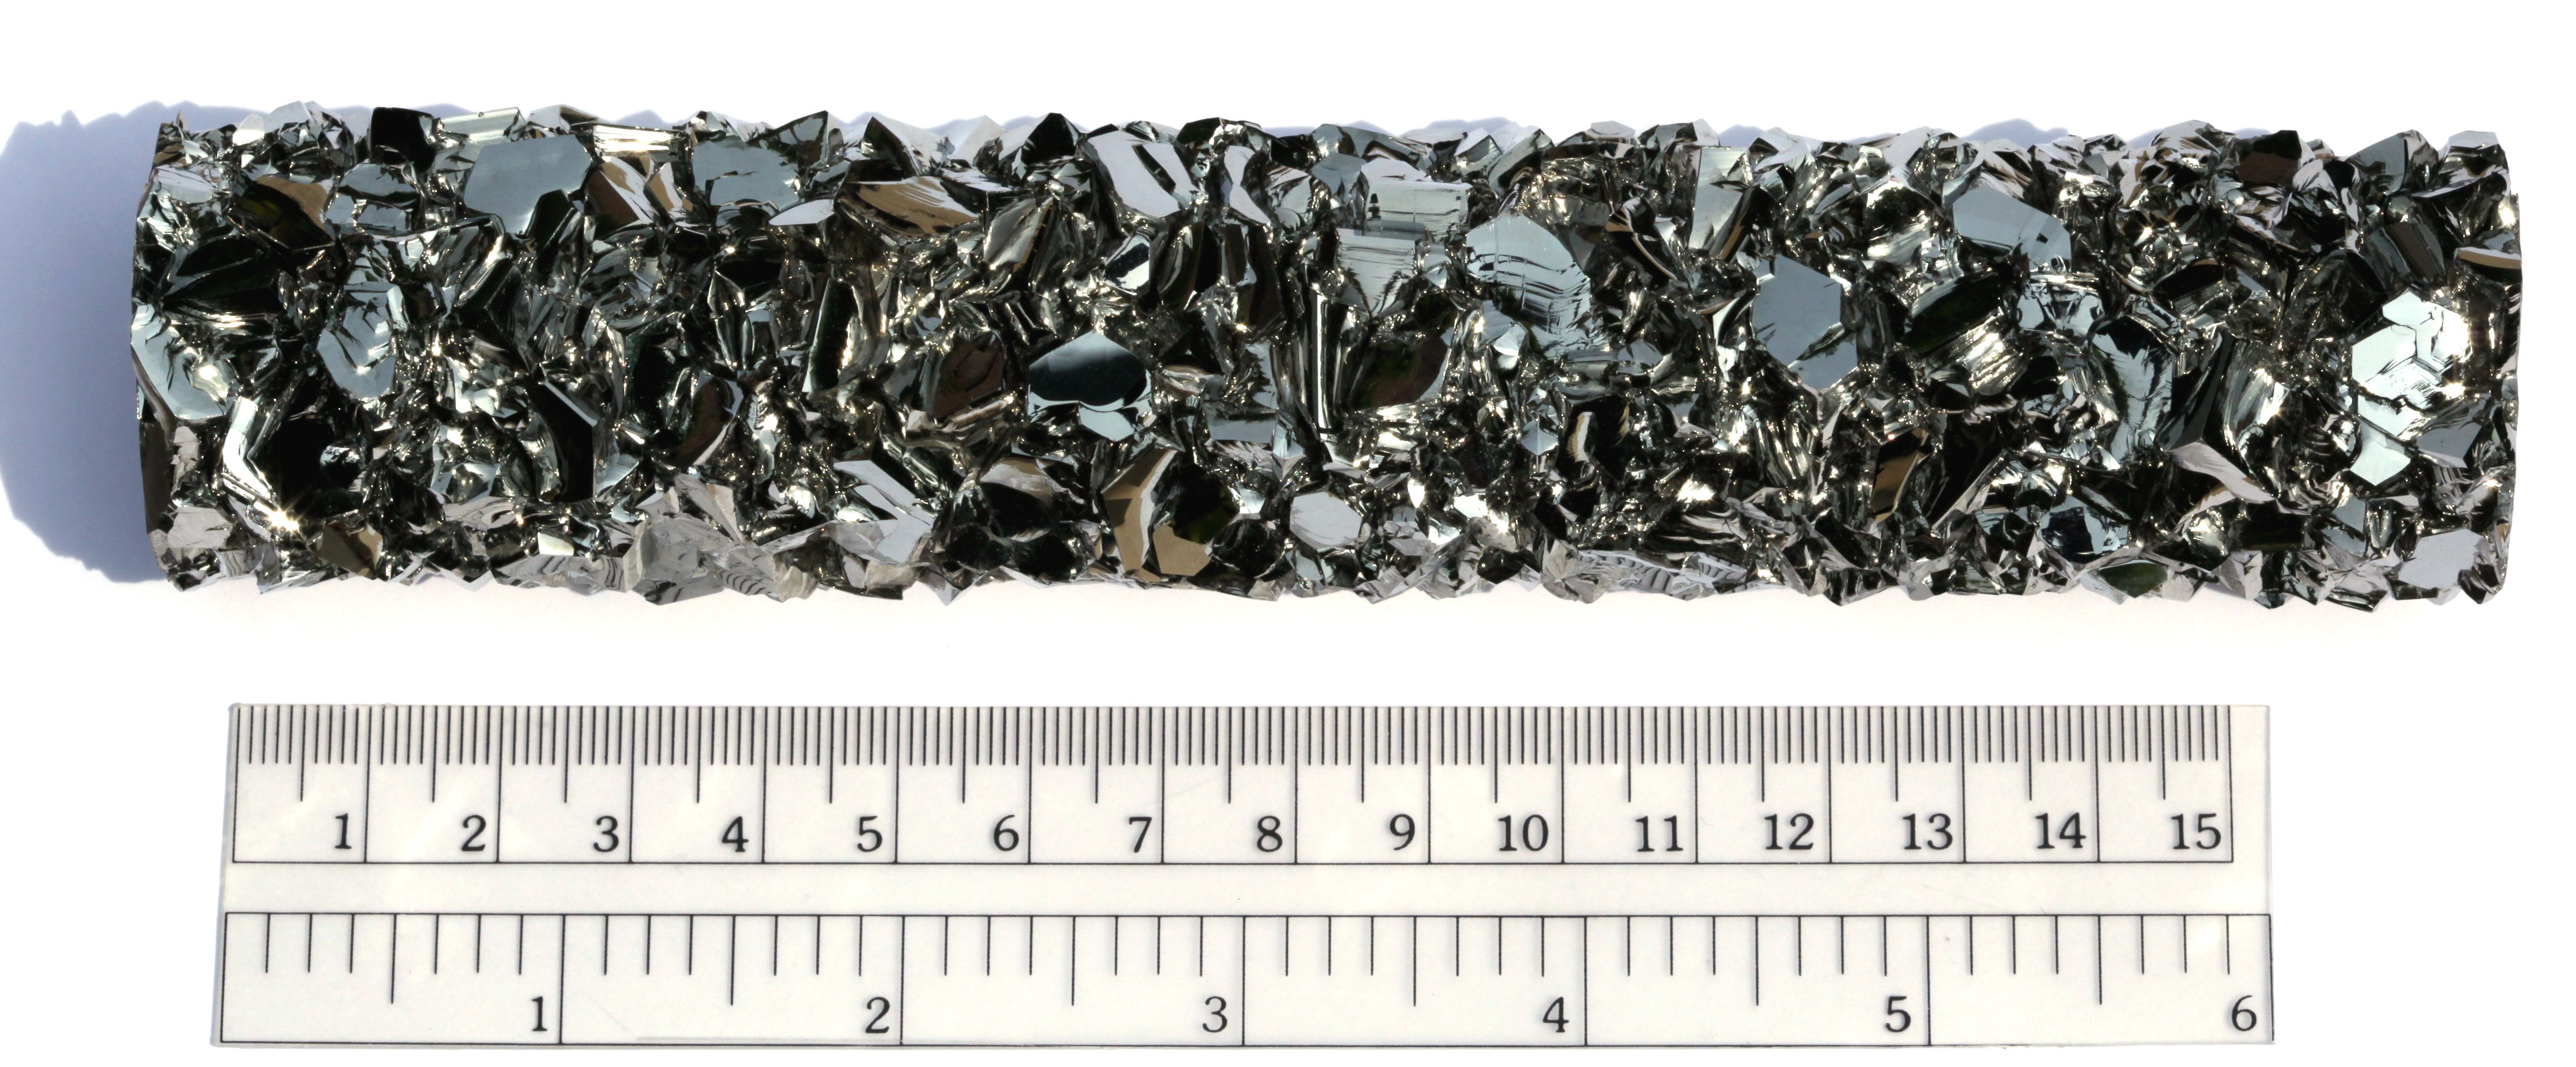 These are crystal of hafnium, one of the transition metals.